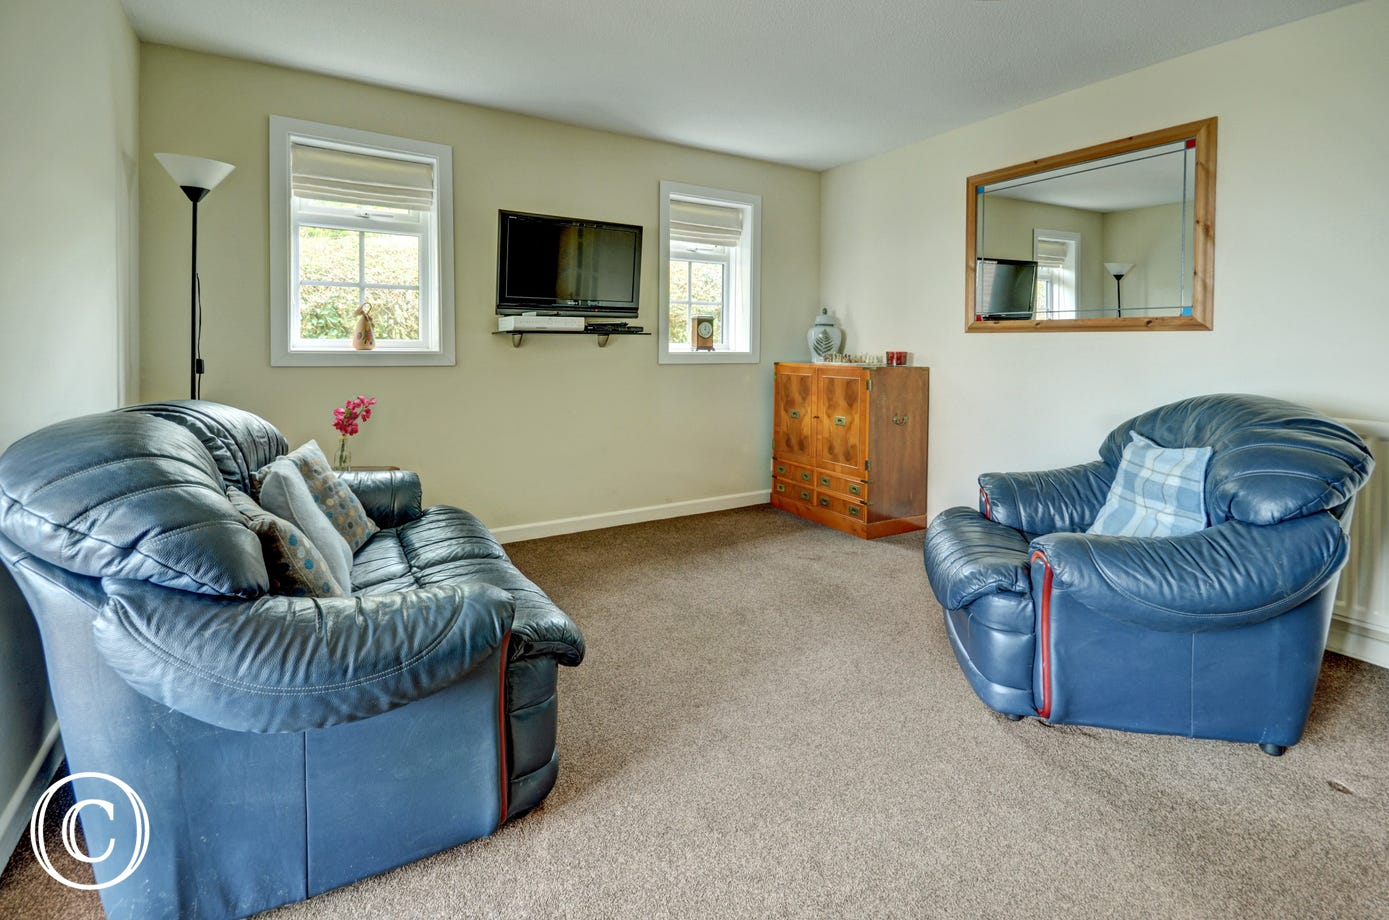 Comfortable leather sofas in the sitting room and wall mounted TV